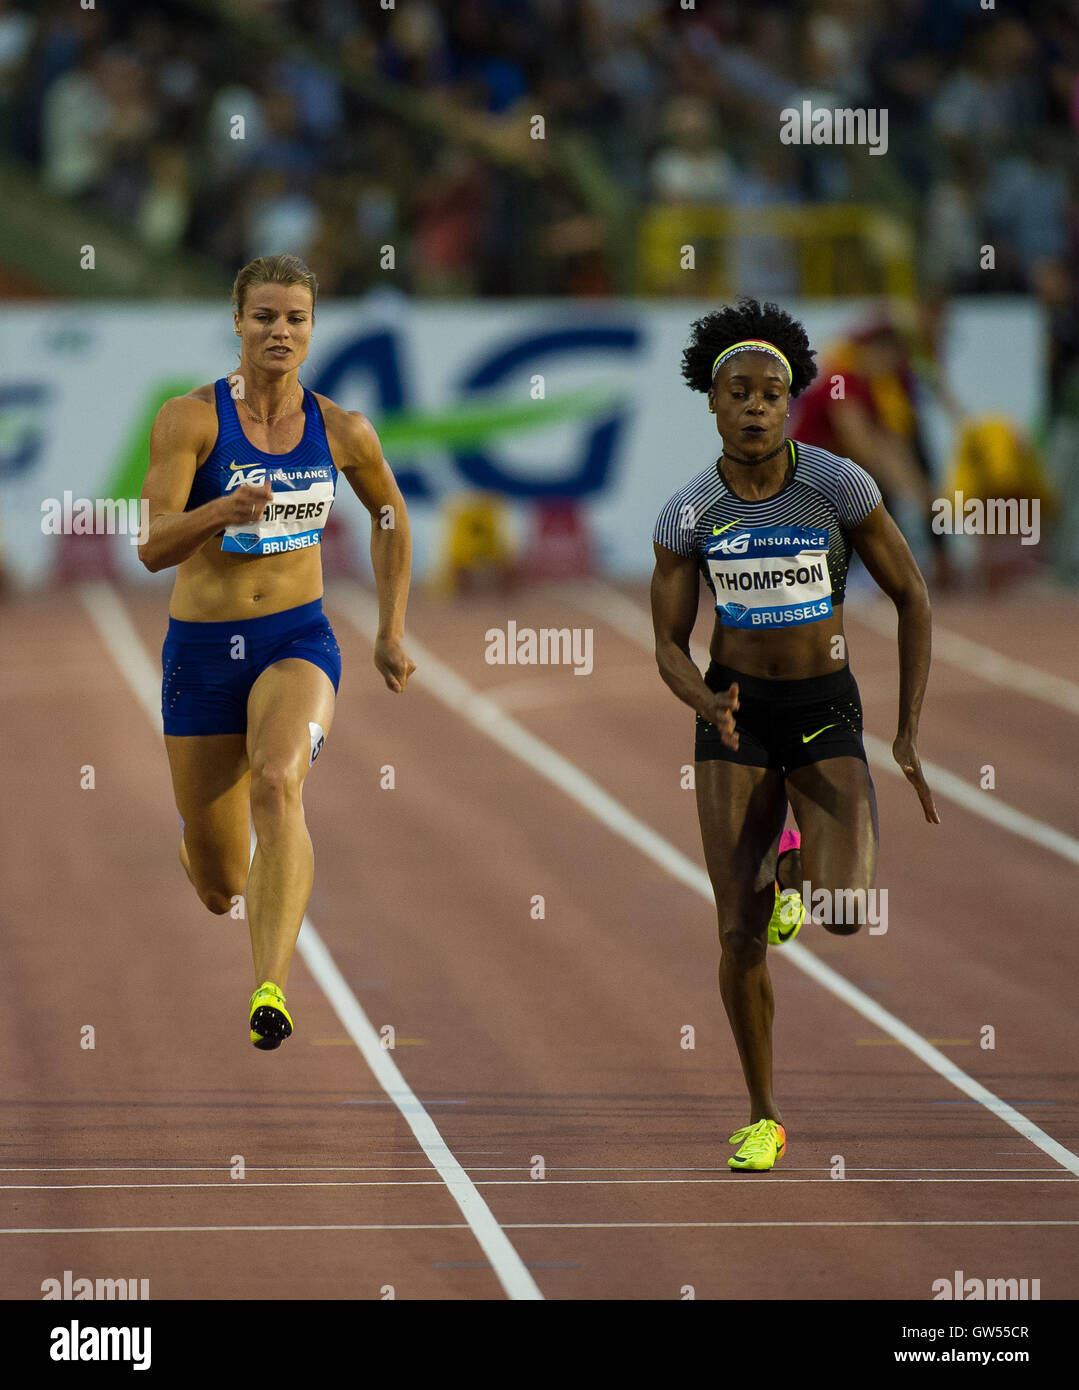 BRUSSELS, BELGIUM - SEPTEMBER 9: Dafne Schippers and  Elaine Thompson competing in the women's 100m at the AG Insurance Stock Photo